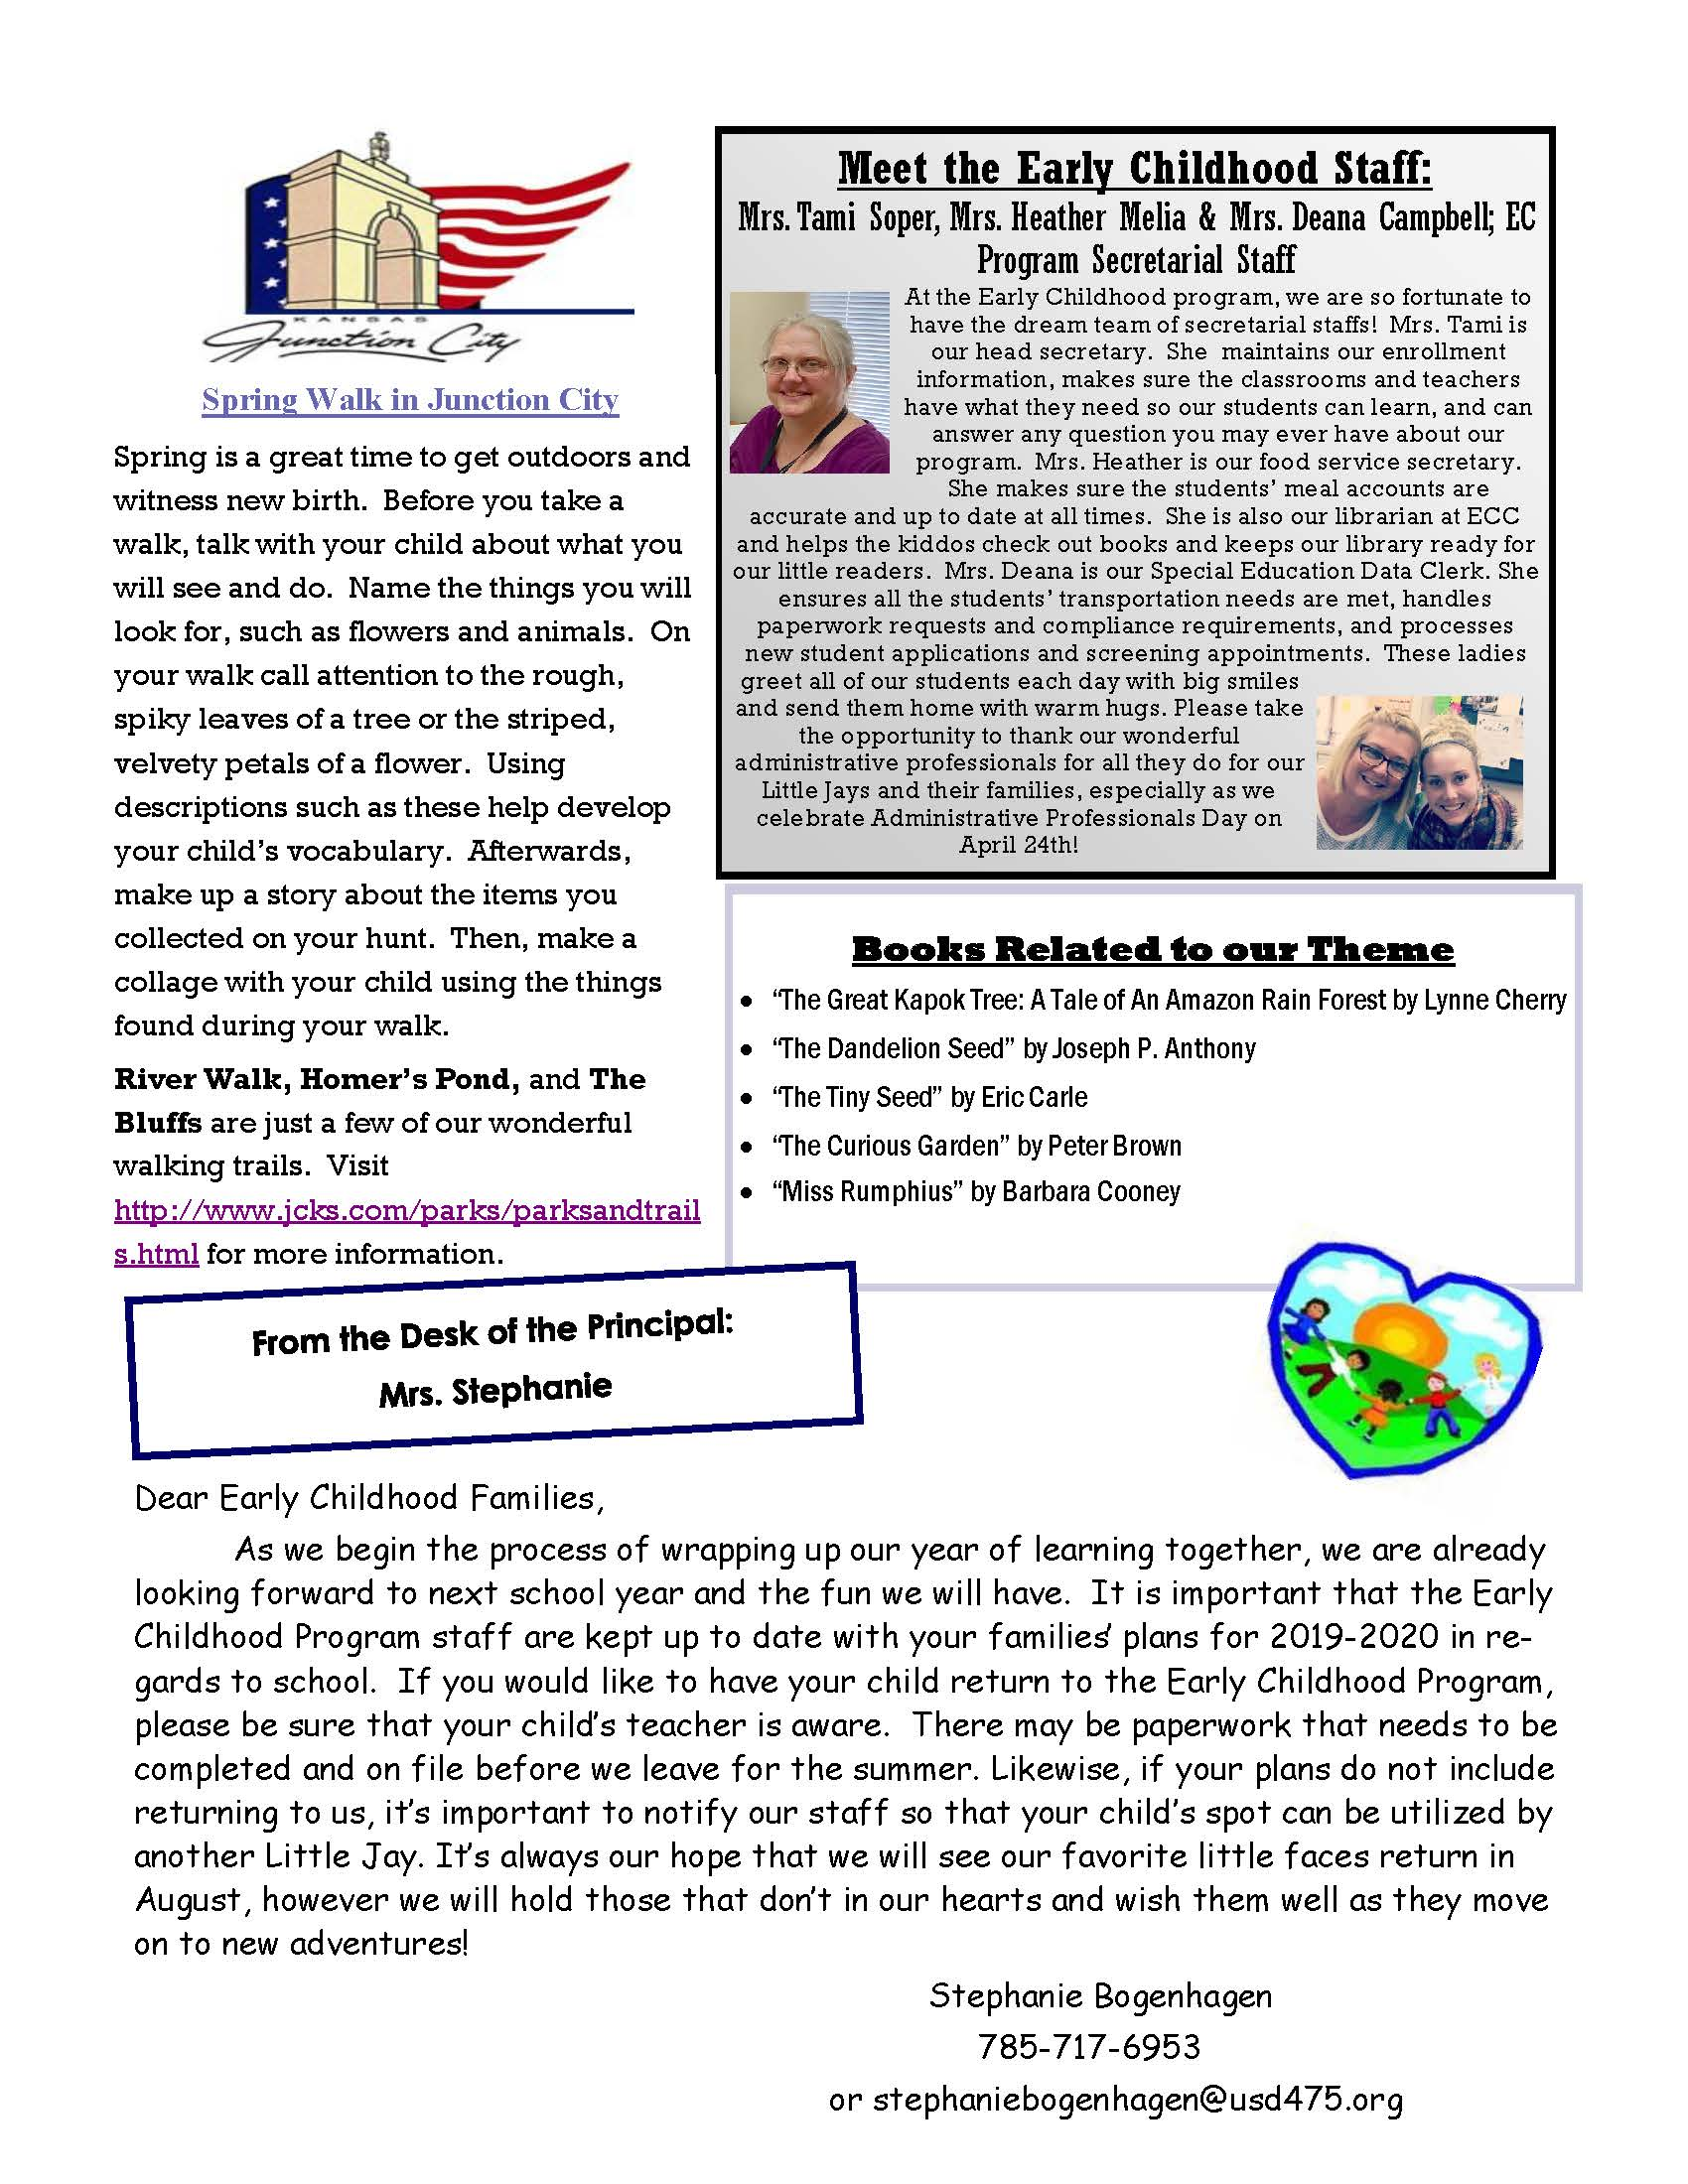 April Newsletter - all information provided above